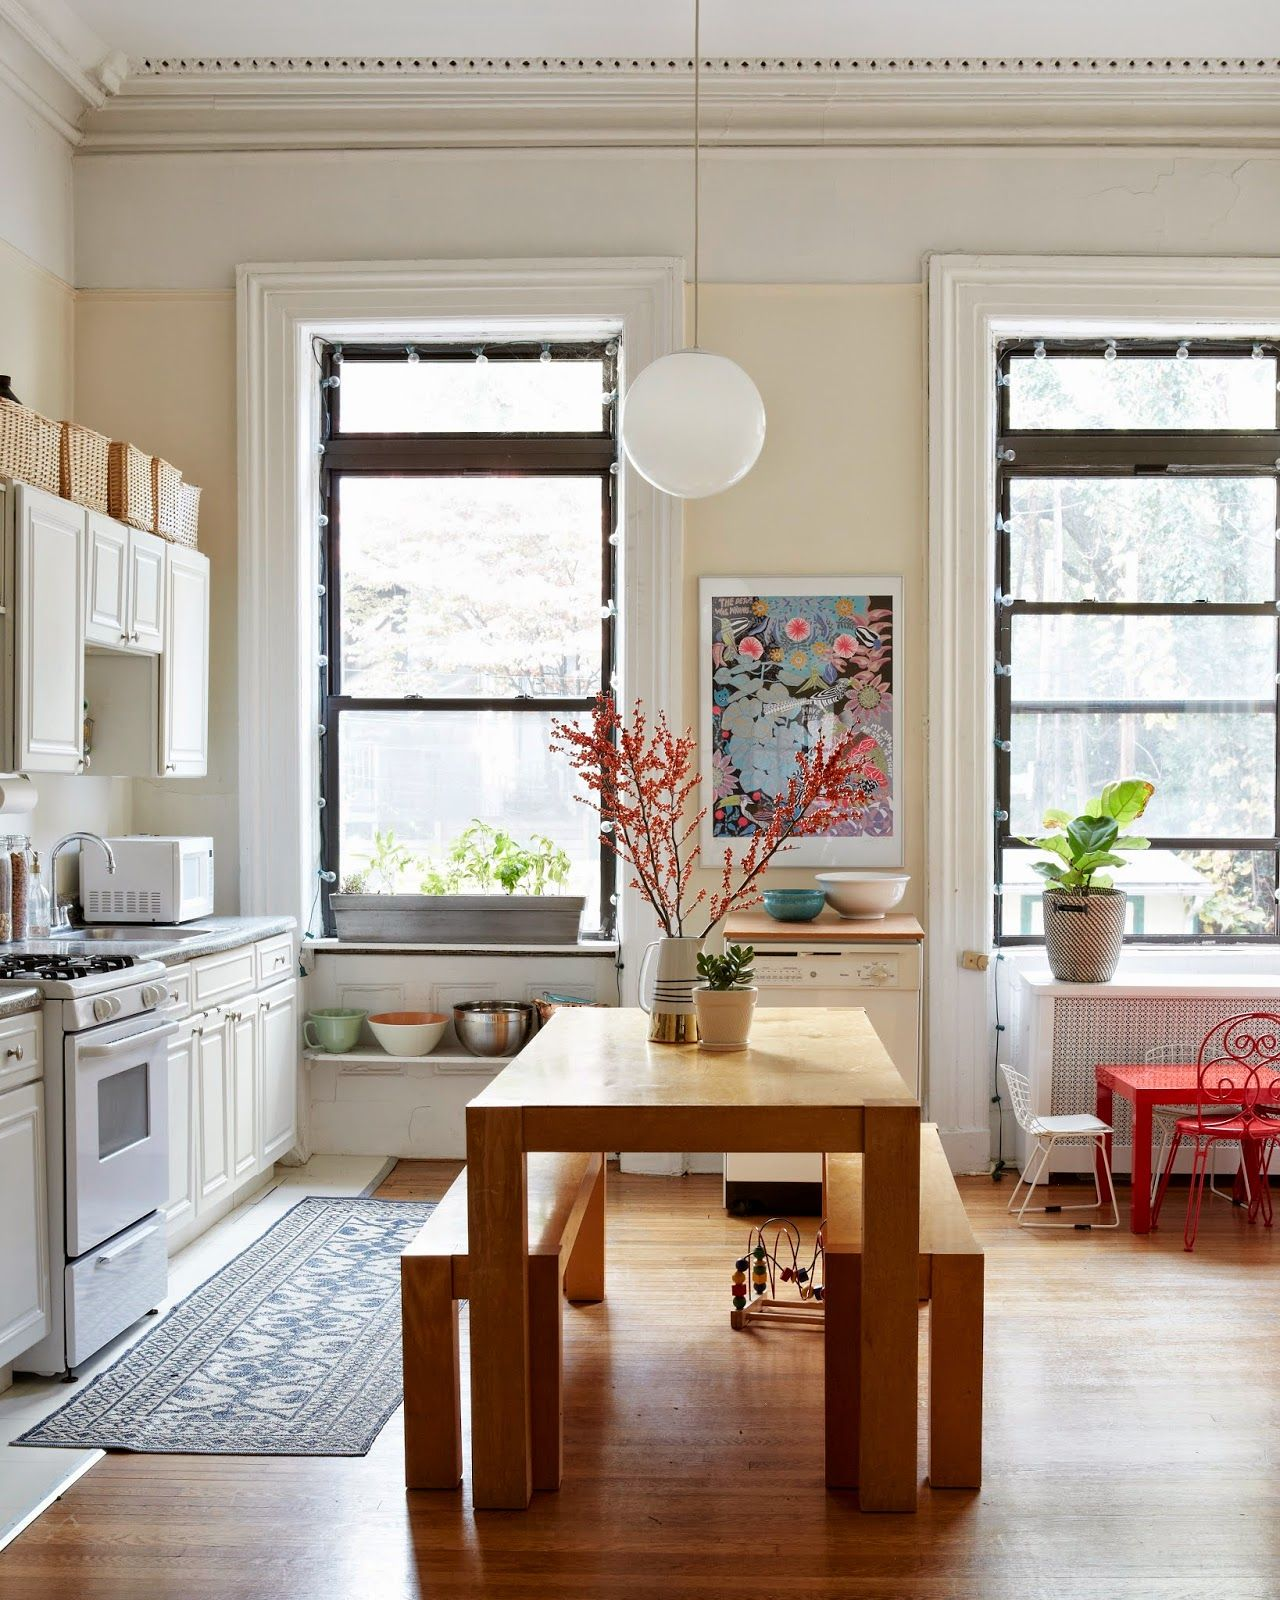 Home Tour Brooklyn Apartment: Oh Joy For Target Pitcher In Linsey Laidlaw's Beautiful